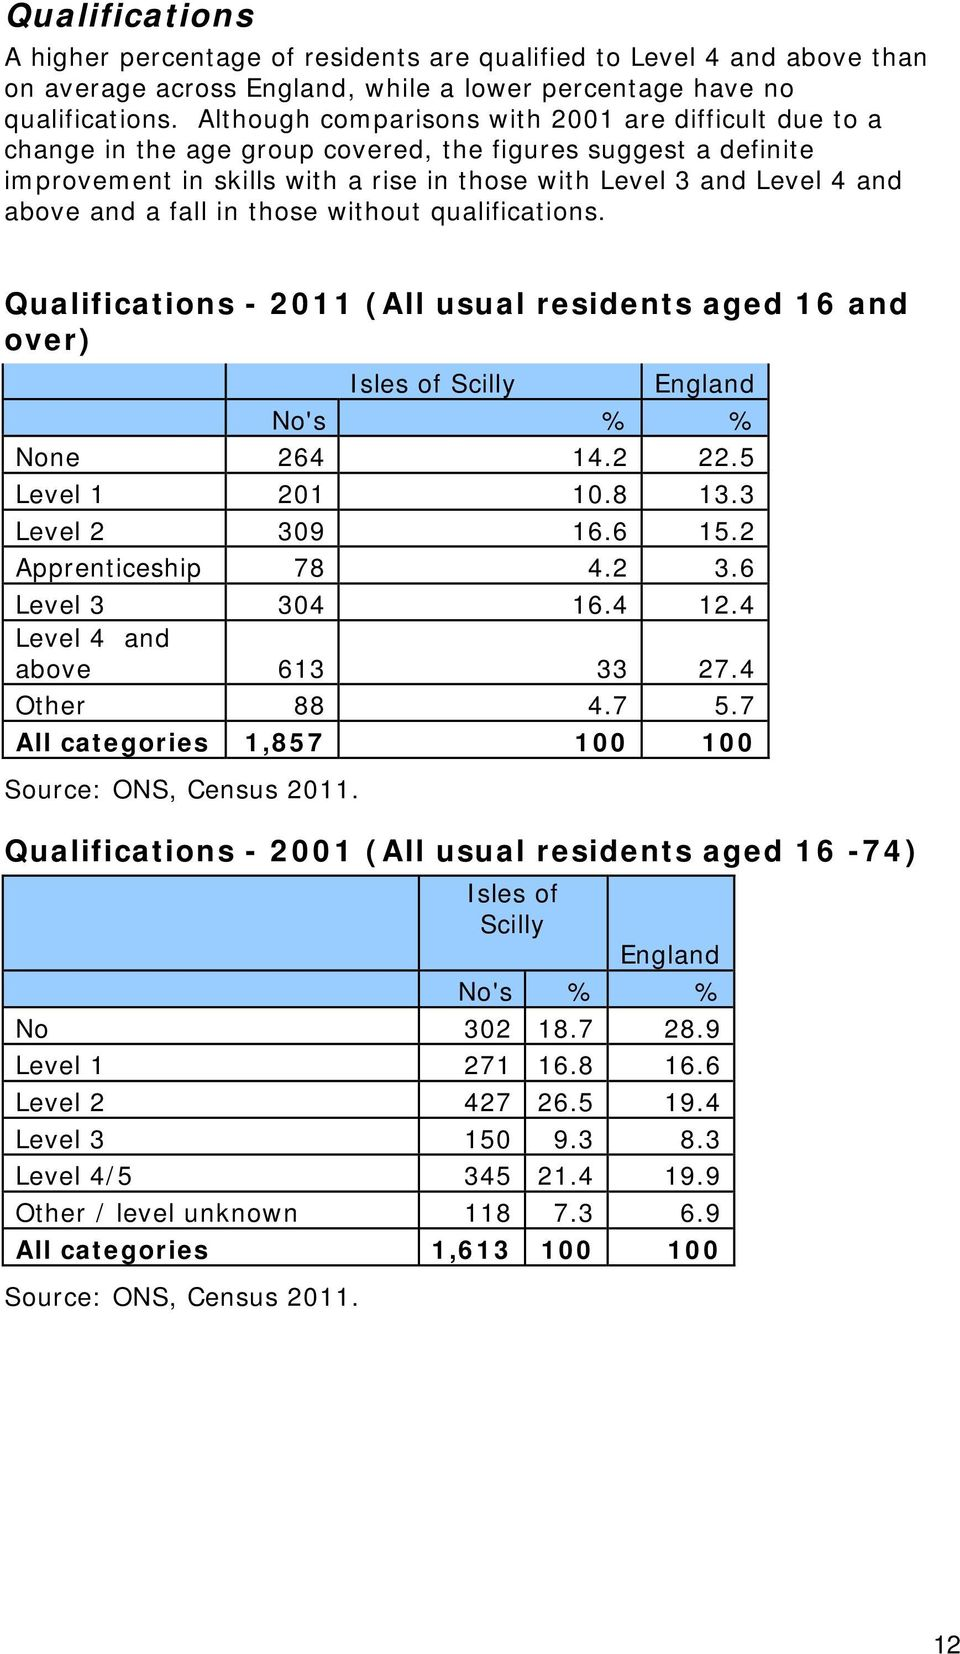 a fall in those without qualifications. Qualifications - 2011 (All usual residents aged 16 and over) Isles of Scilly England No's % % None 264 14.2 22.5 Level 1 201 10.8 13.3 Level 2 309 16.6 15.